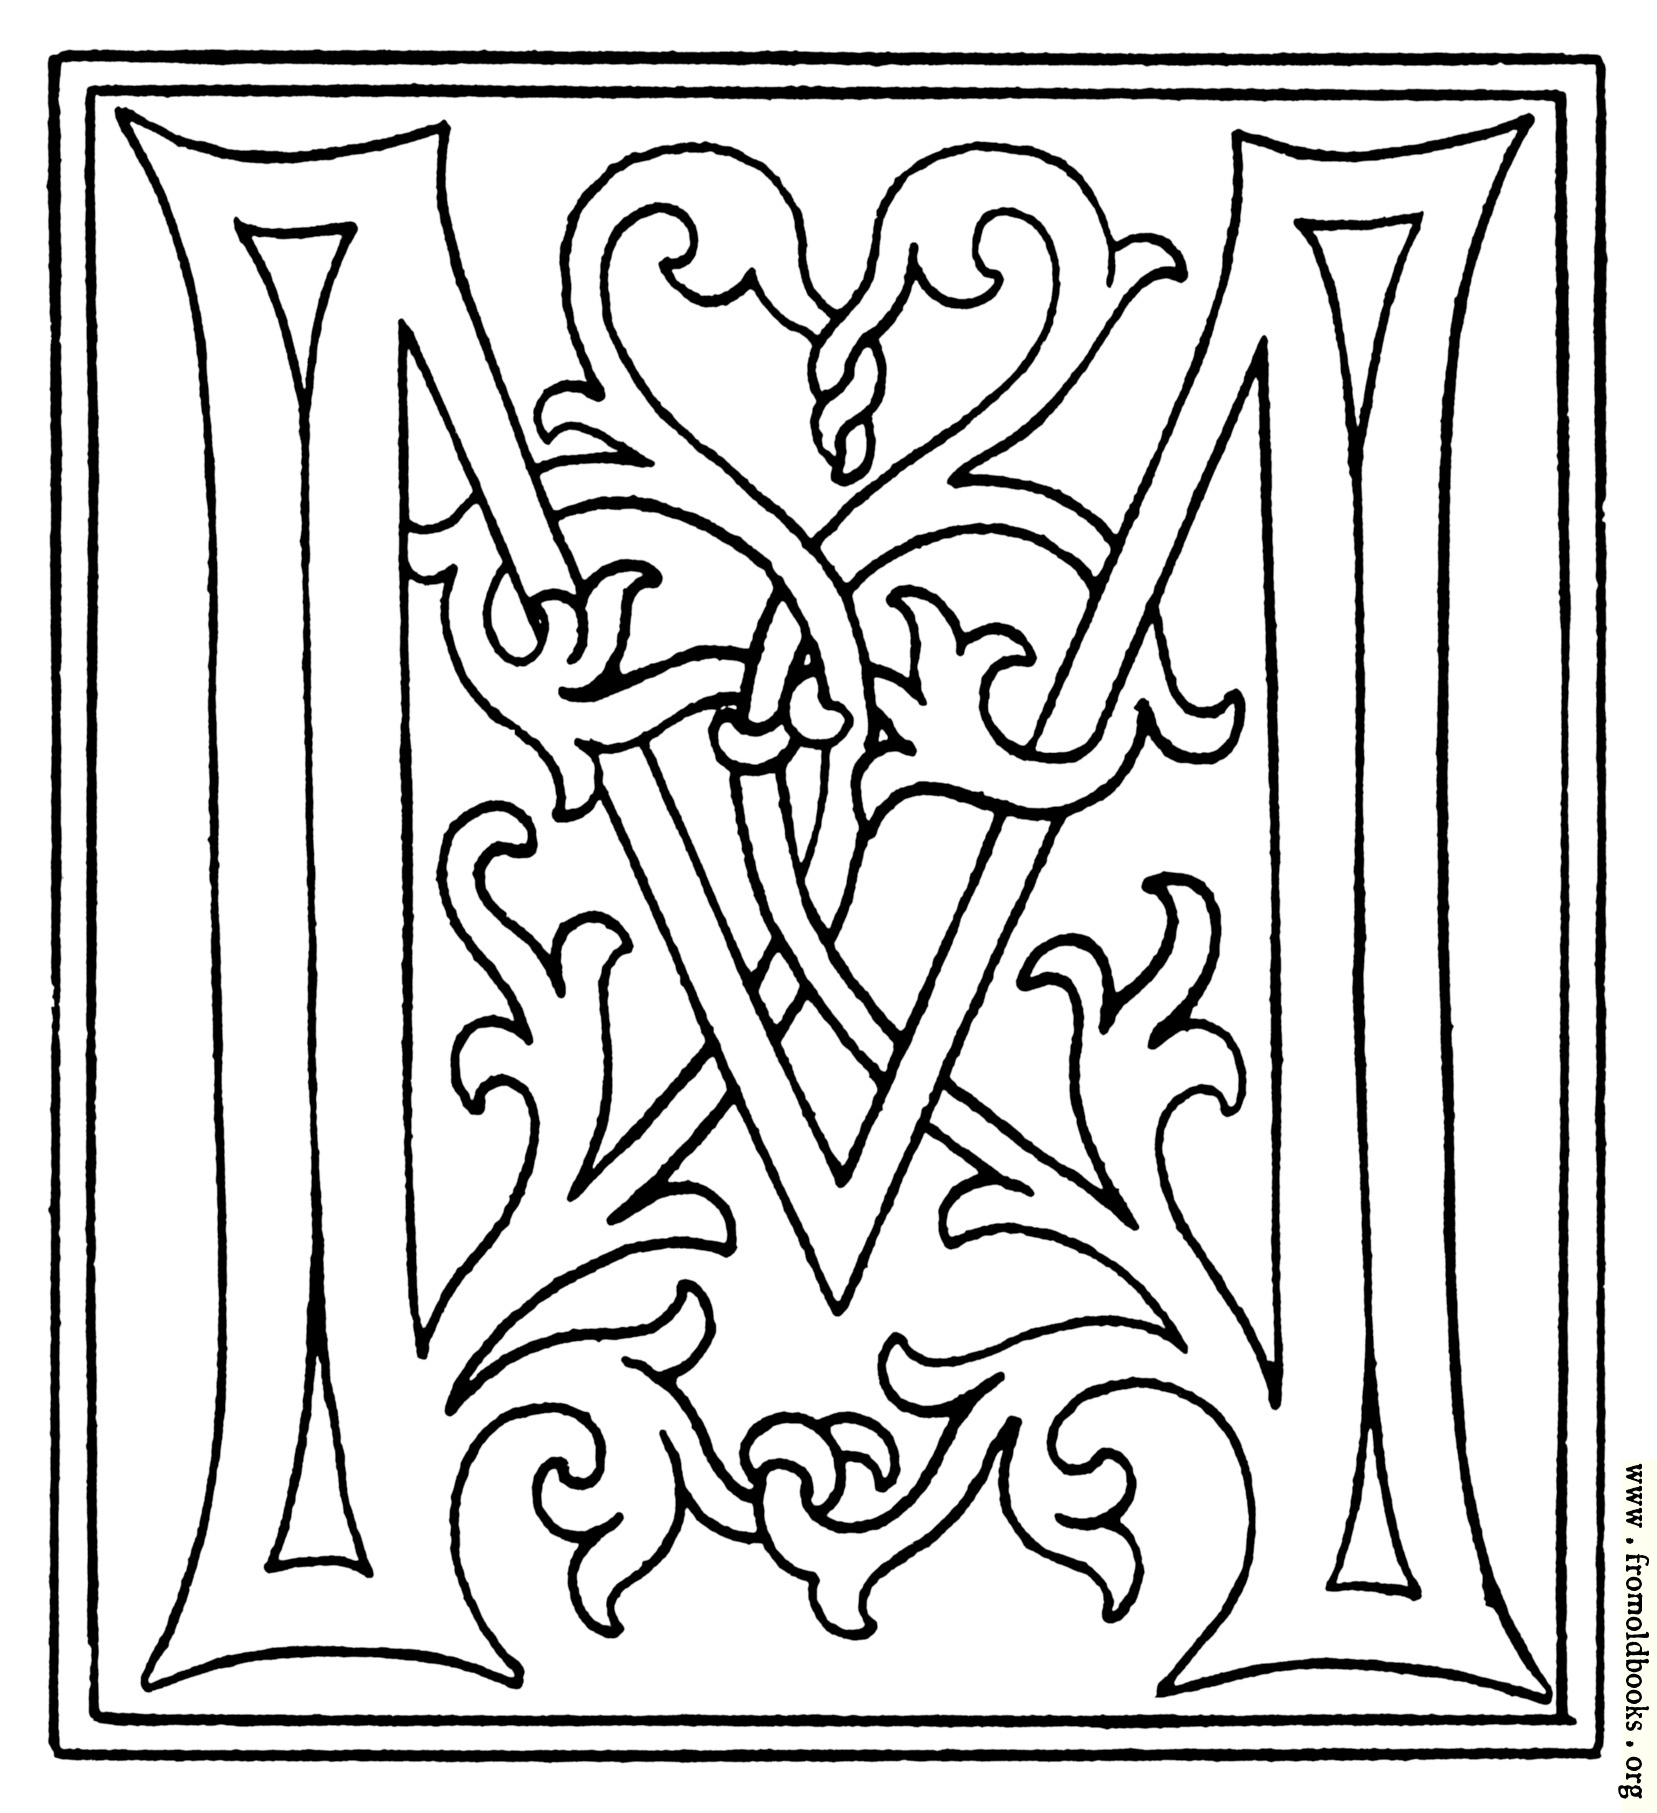 clipart initial letter m from late 15th century printed book